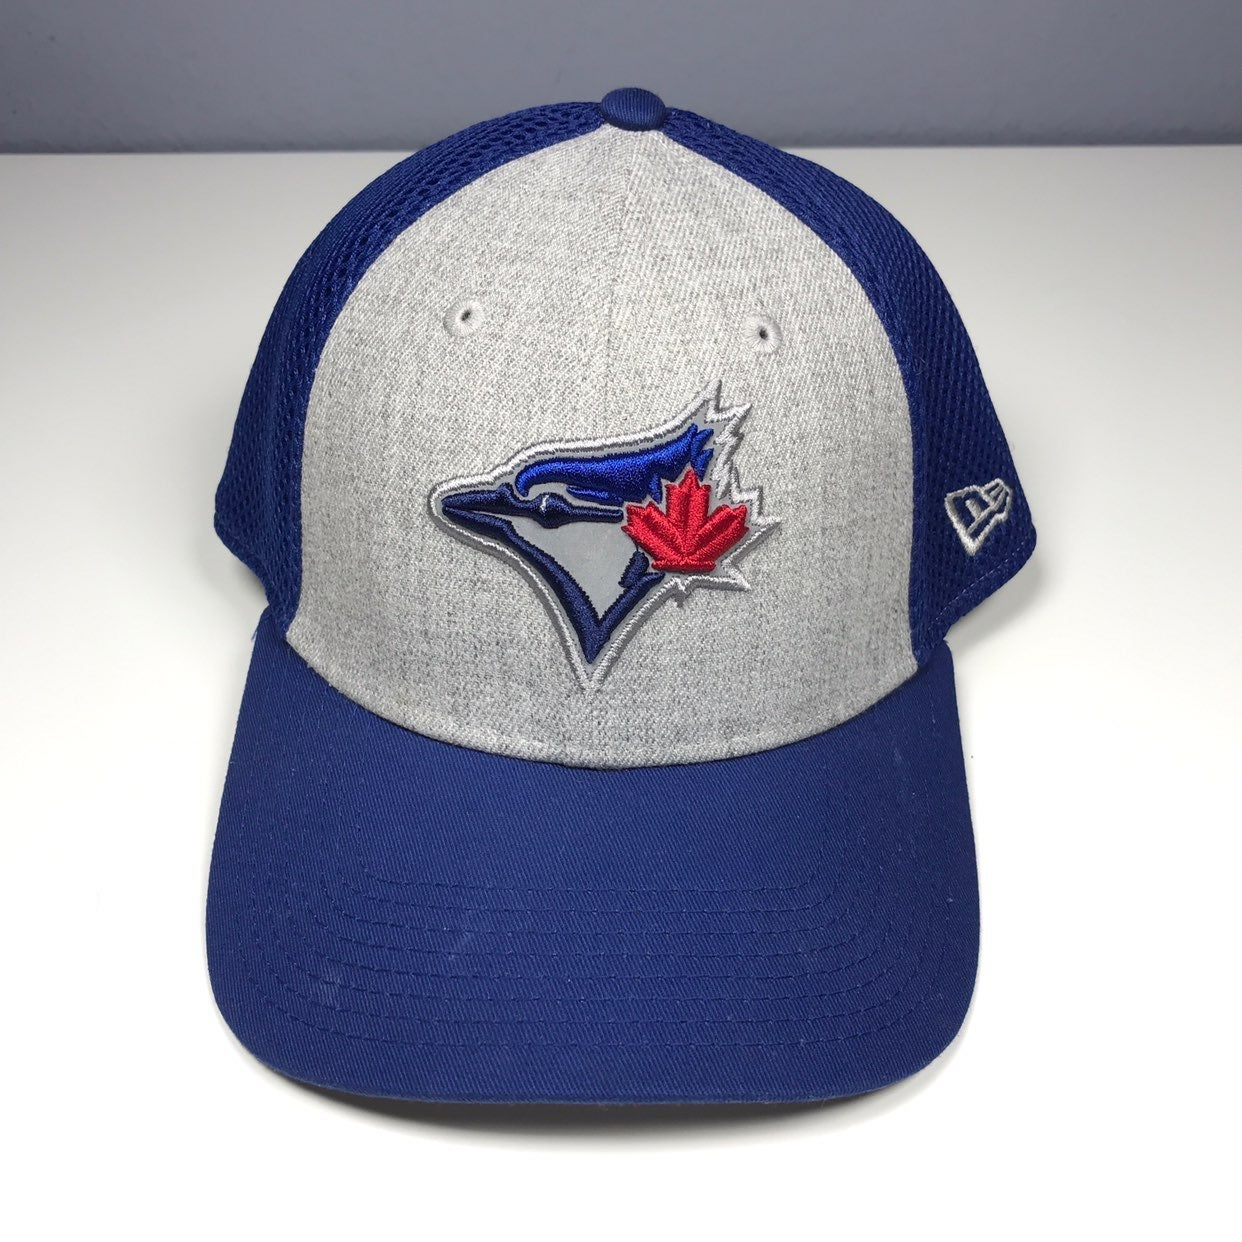 MLB 39Thirty New Era Blue Jays Cap S/M